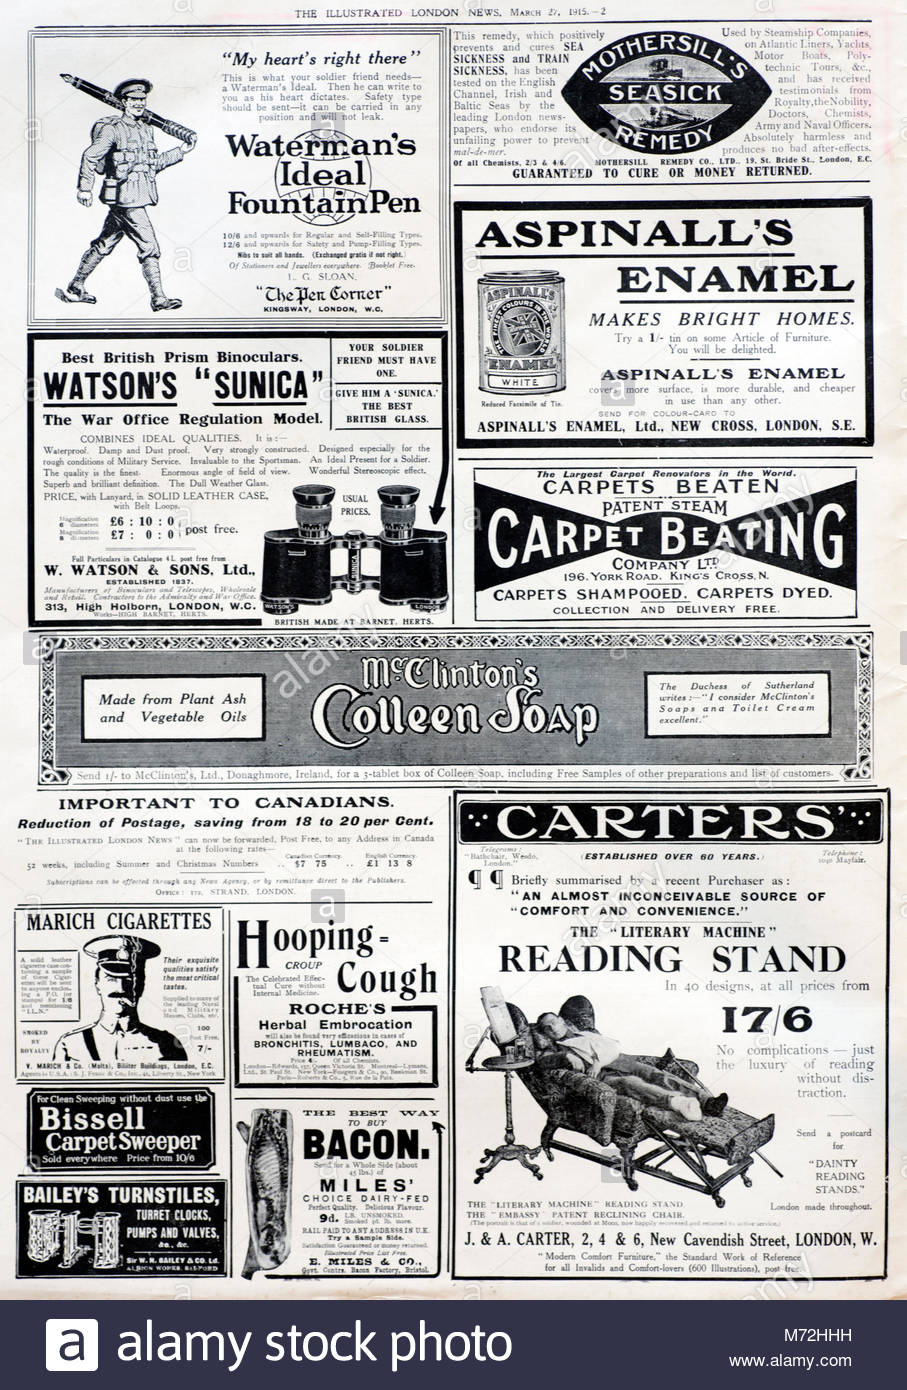 Vintage Illustrated London News magazine page with adverts 1915 - Stock Image